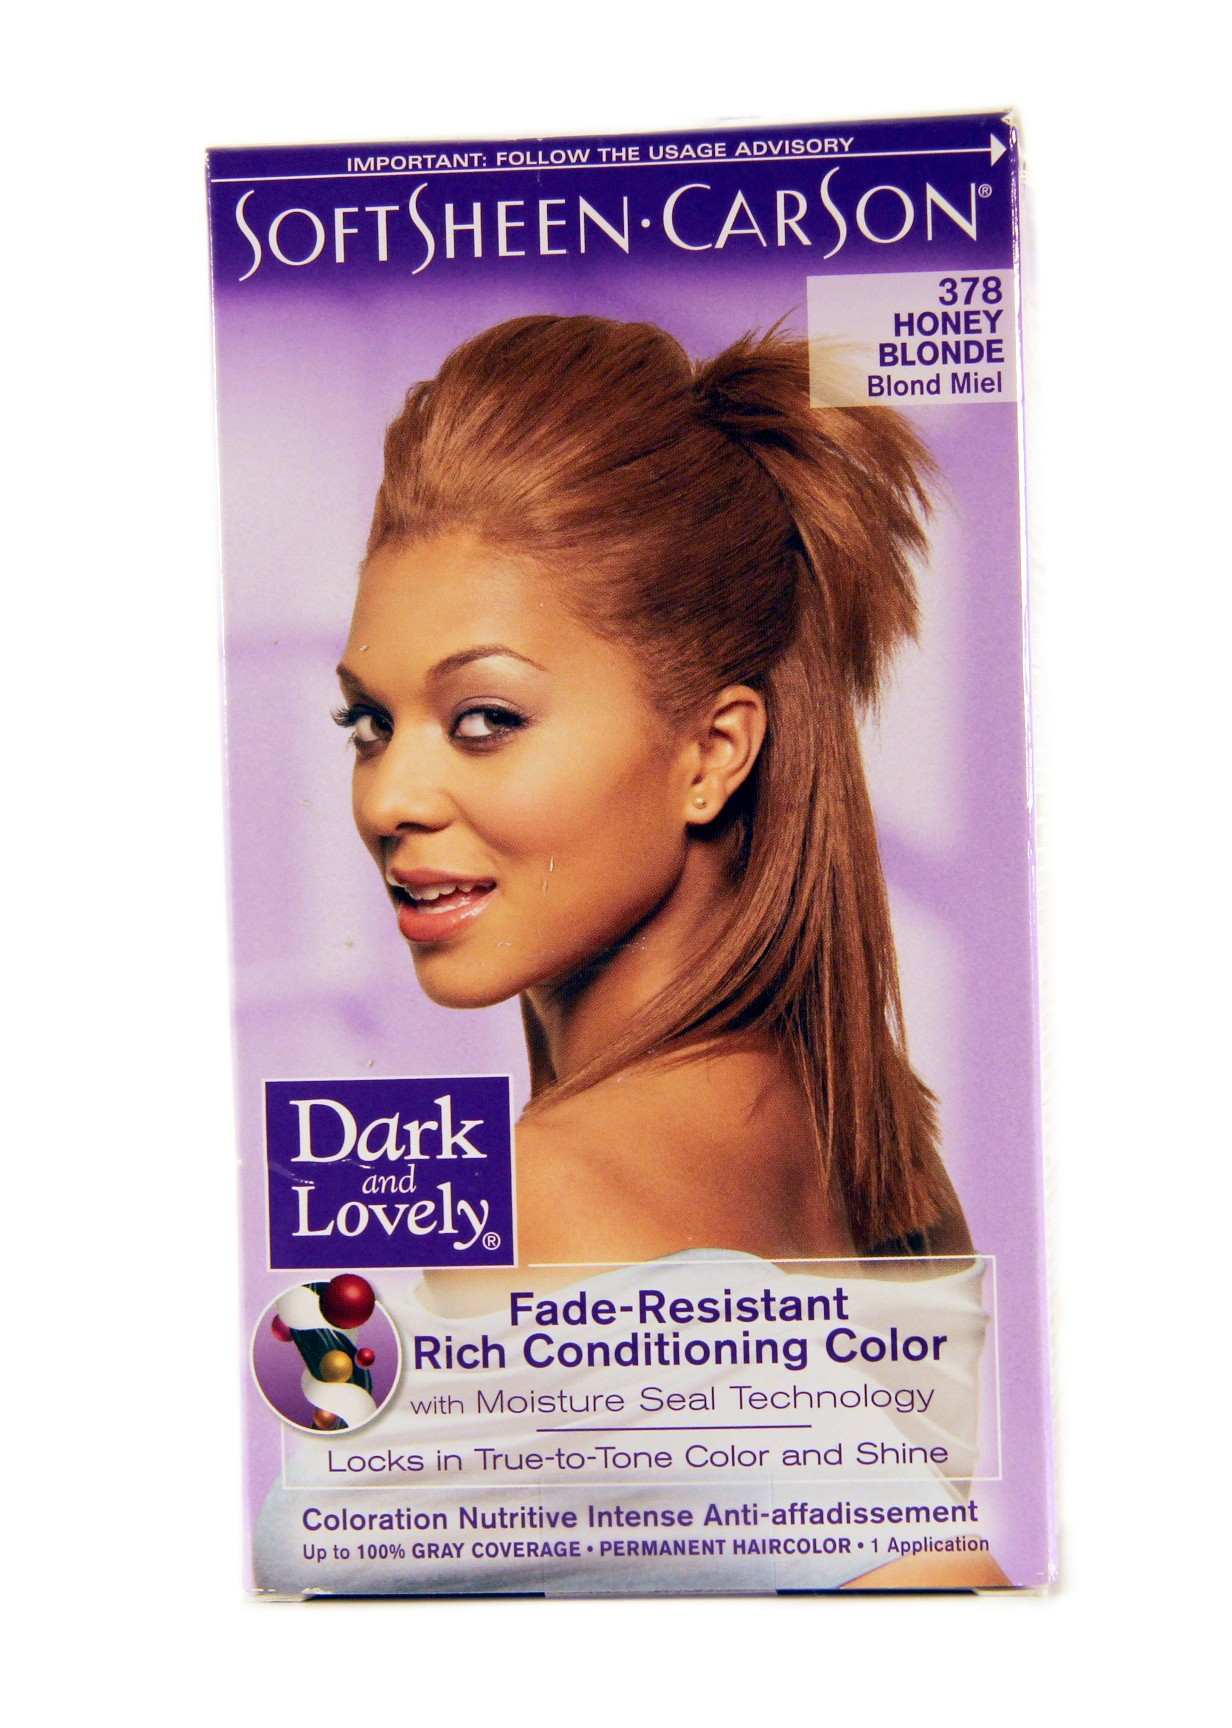 dark and lovely coloration blond miel 378 lady edna - Coloration Blond Miel